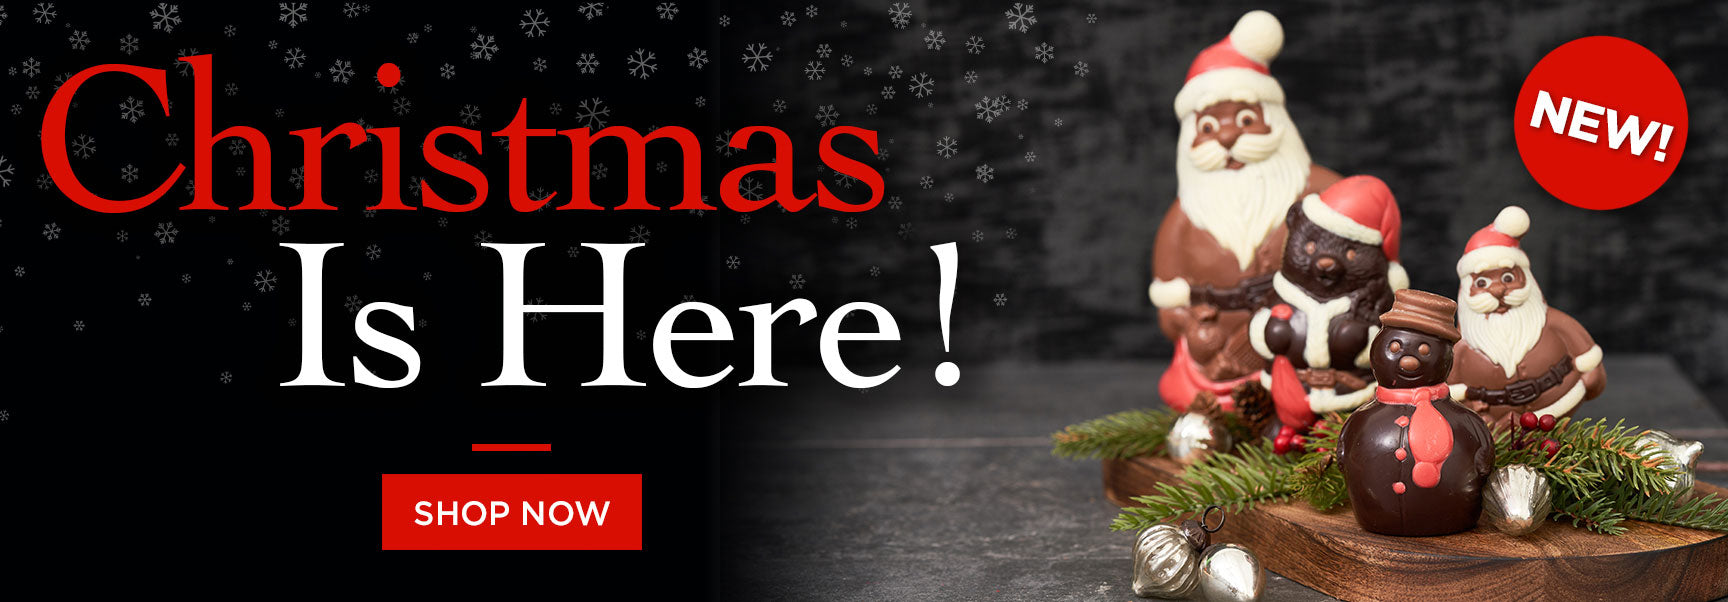 Christmas is Here order Jacques Torres Nownow